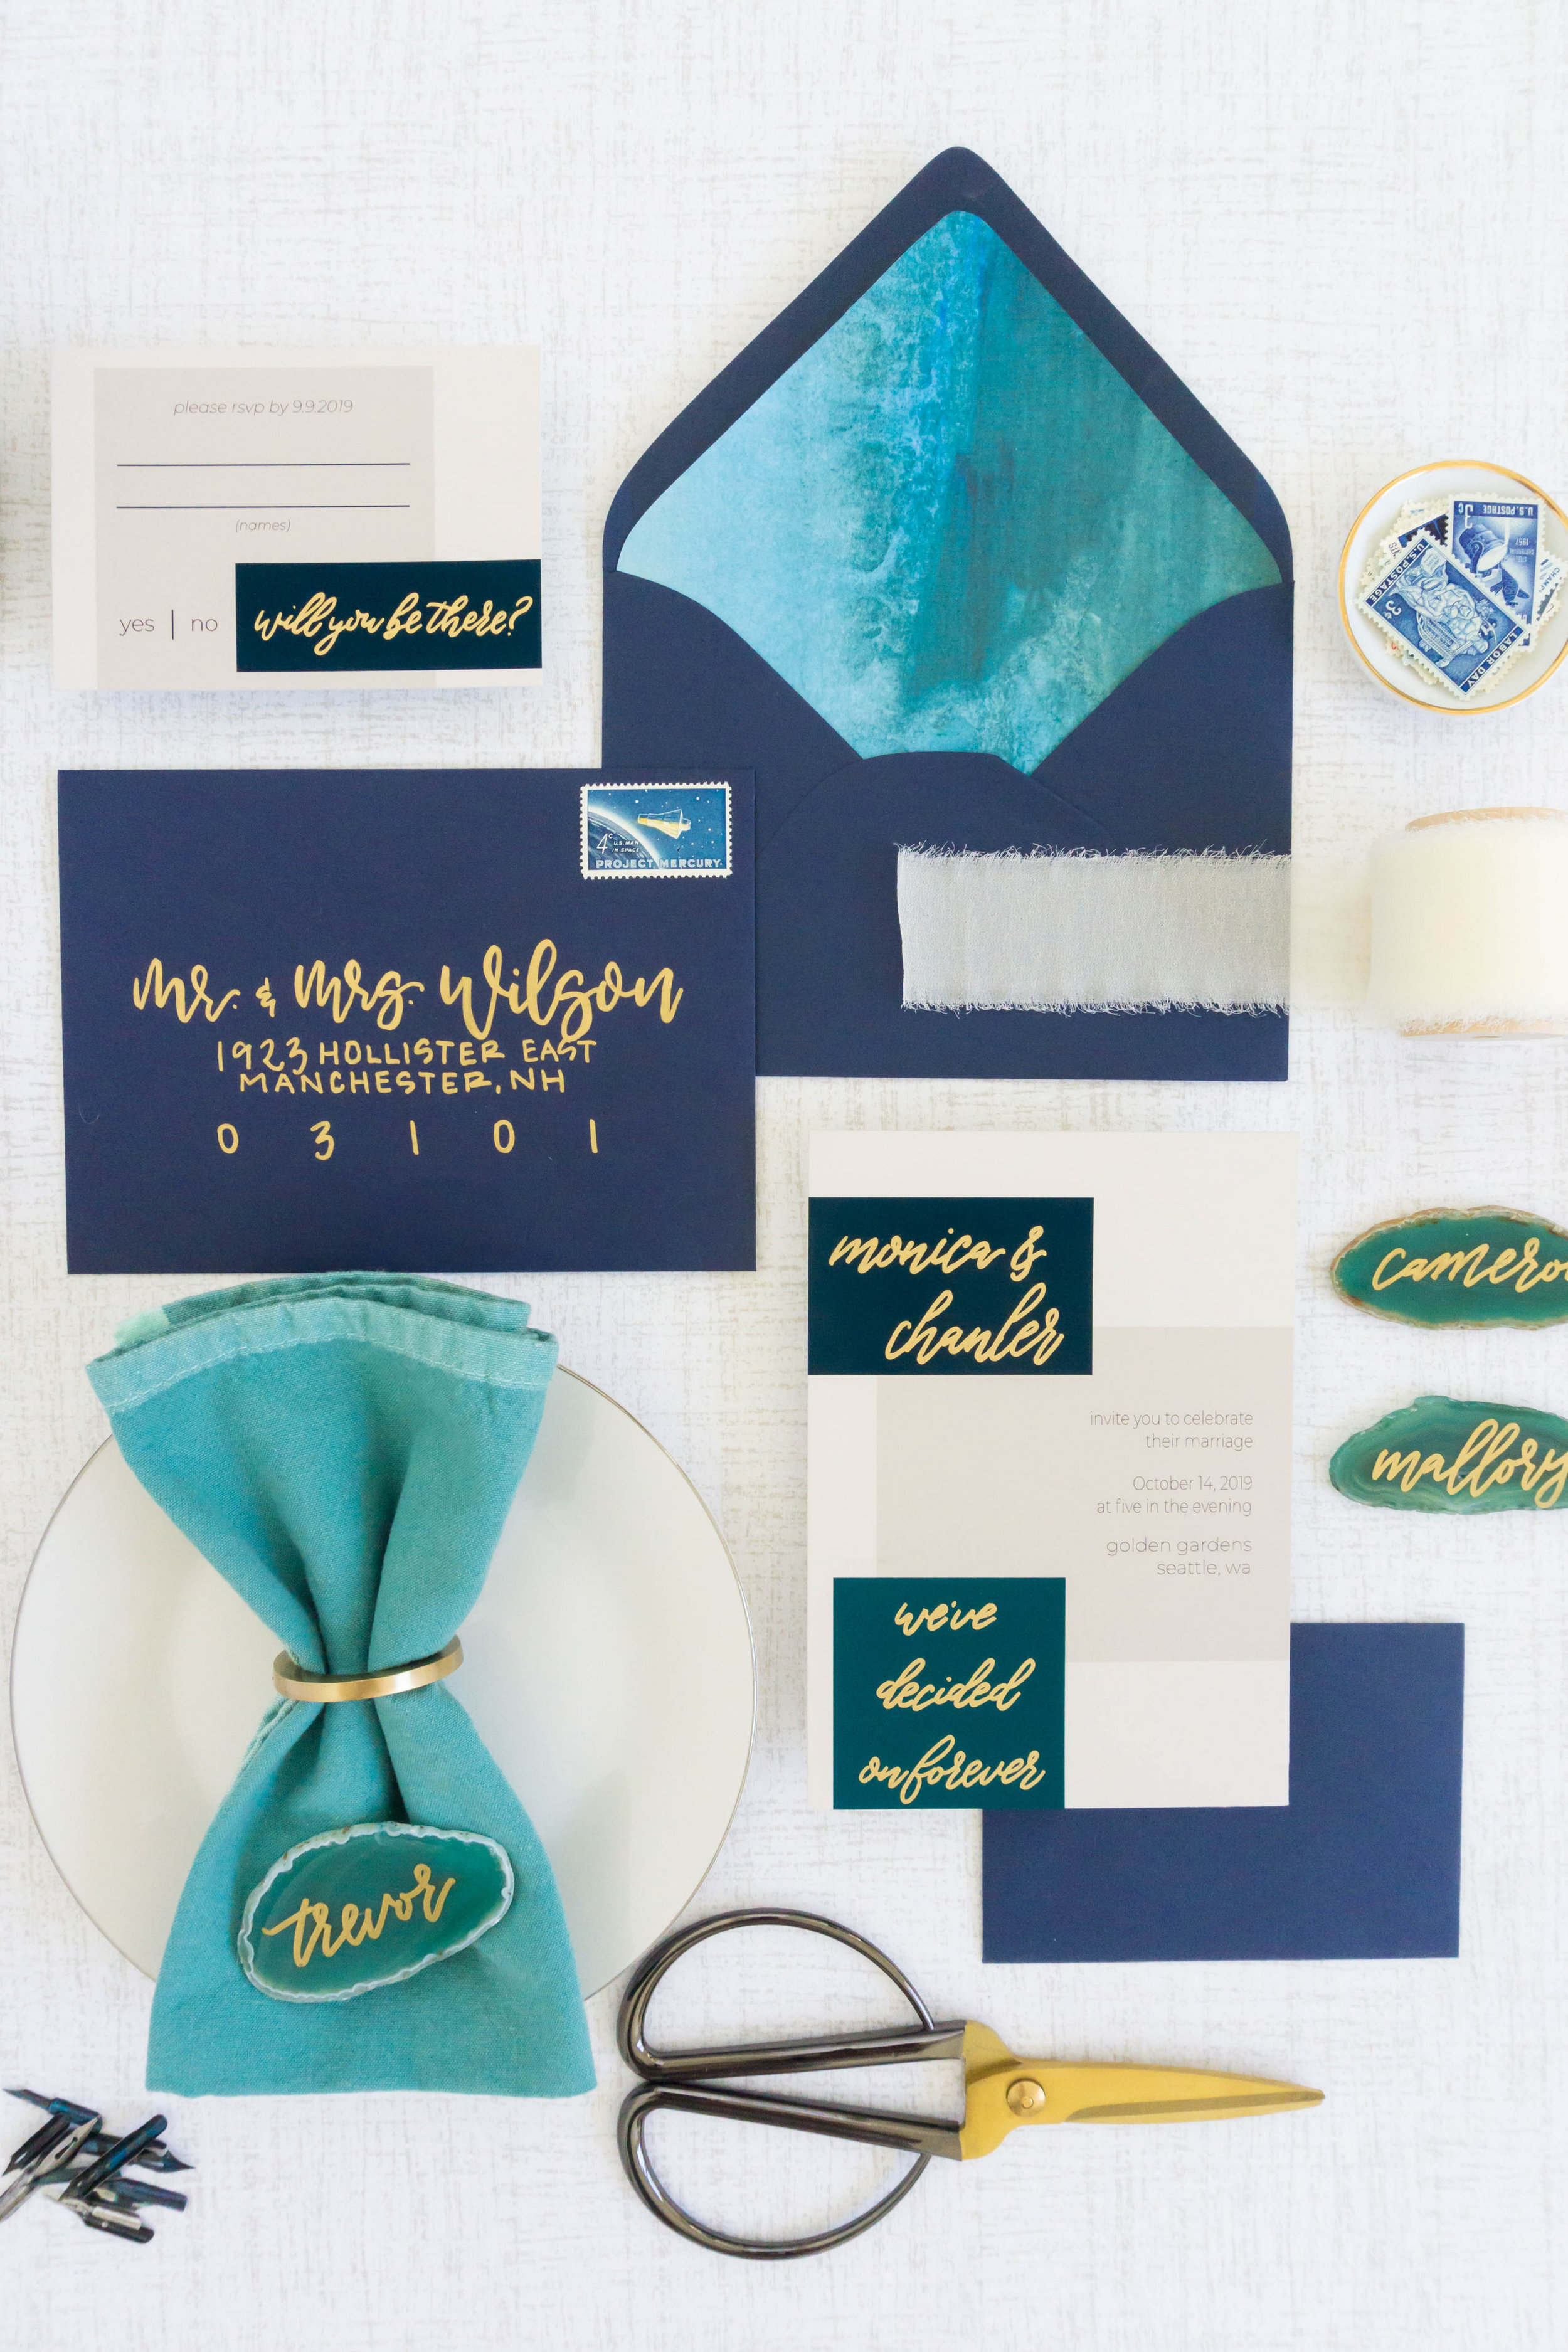 love-fern-design-studio-custom-wedding-invitations-for-the-modern-couple-modern-calligraphy-in-seattle-washington-custom-wedding-stationery-navy-gold-teal